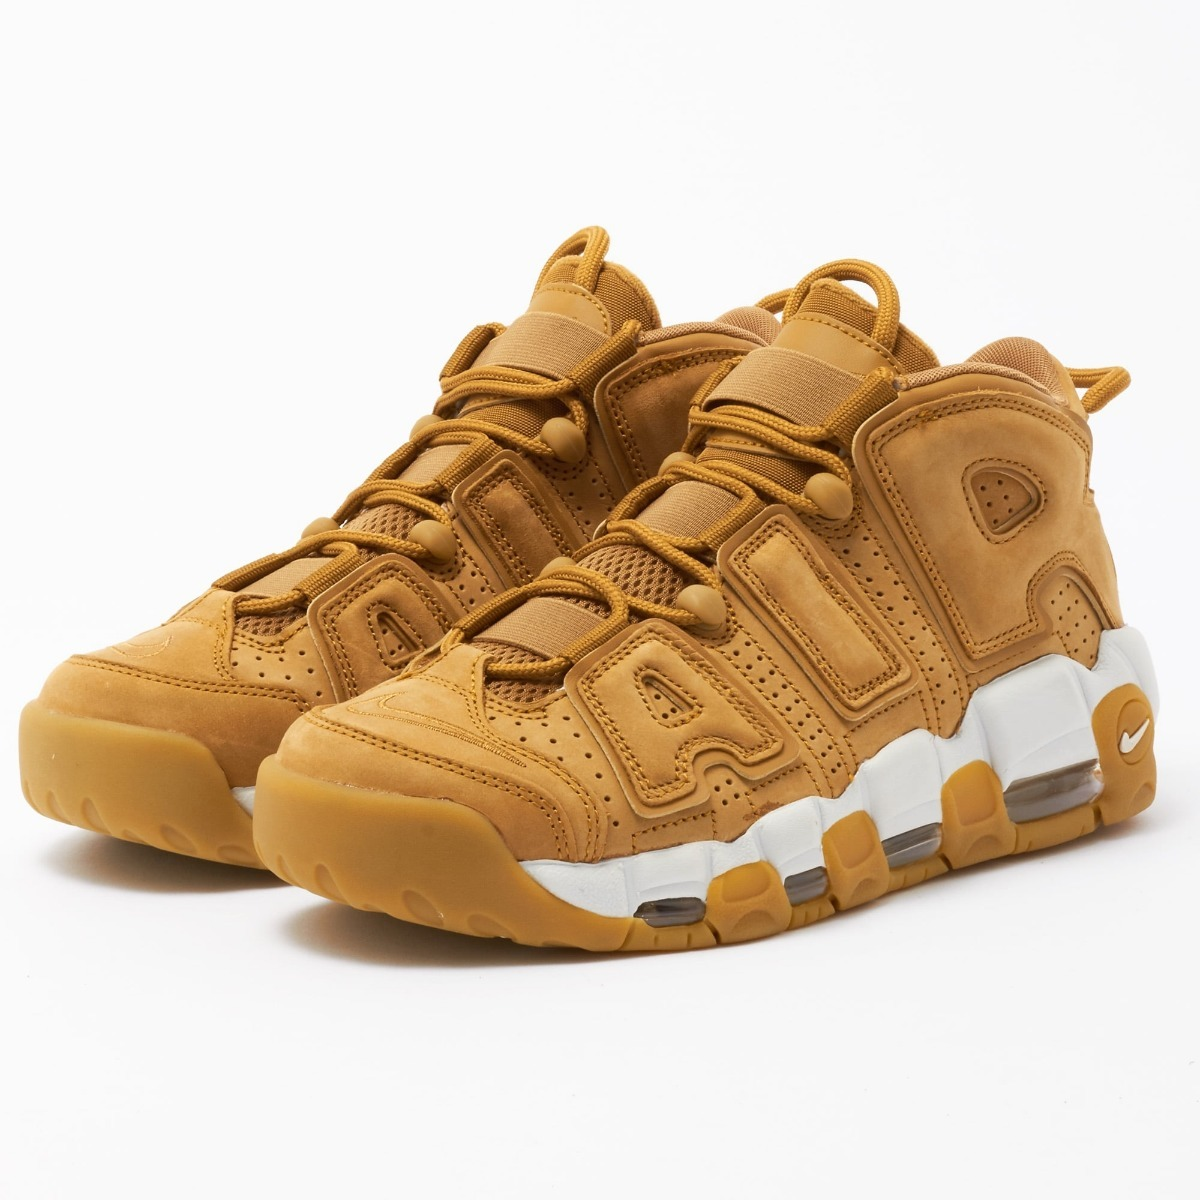 outlet store 41ea4 17b4b tenis nike air more uptempo 96 flax originales retro pippen ...